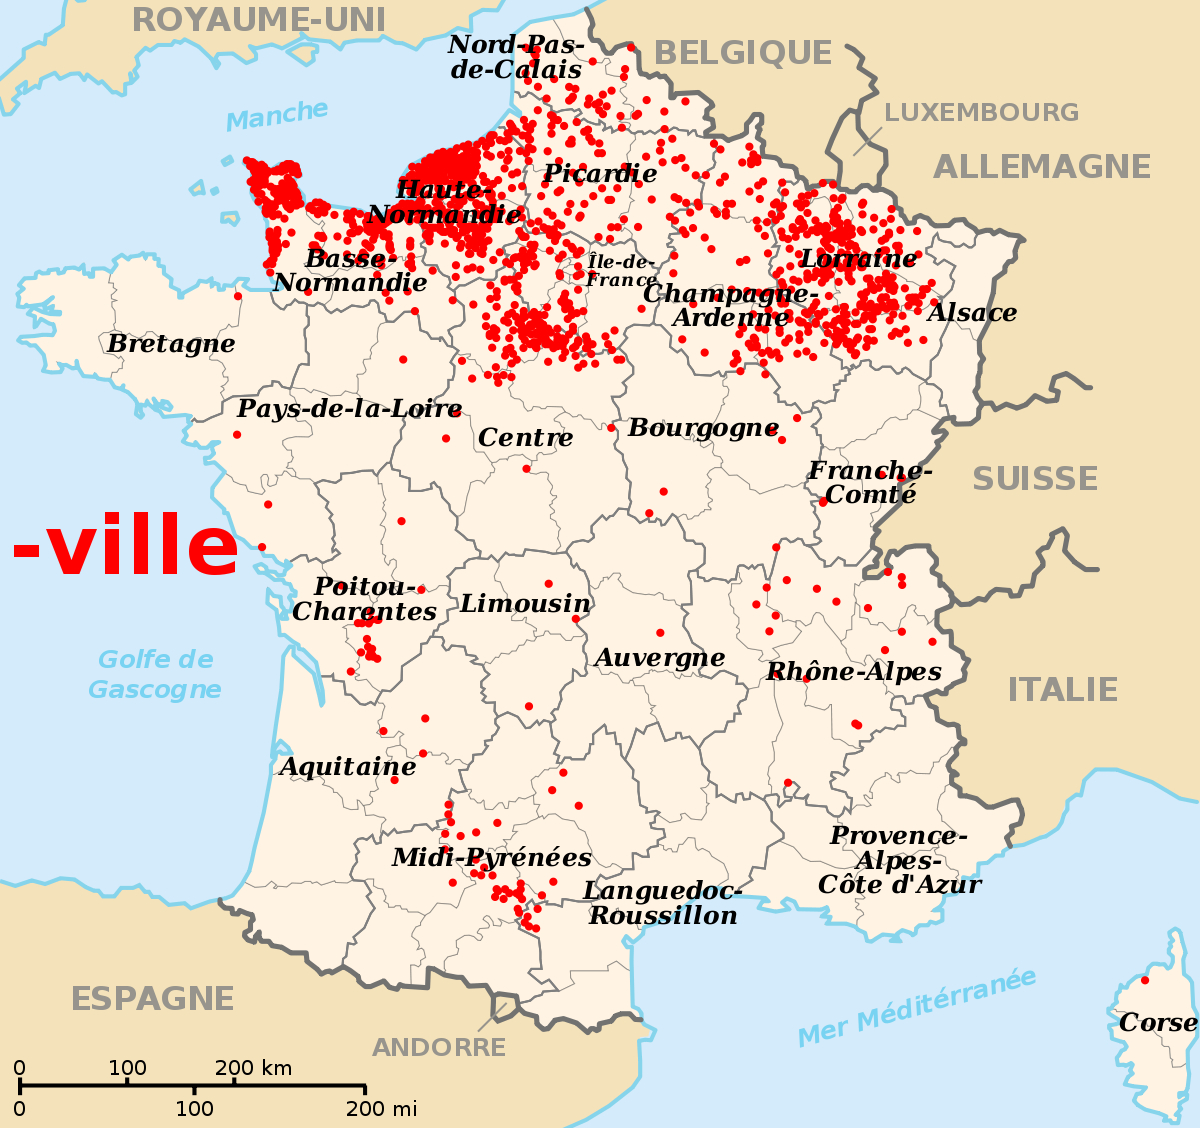 File:communes Of France Ending With -Ville.svg - Wikimedia intérieur Carte De La France Avec Ville